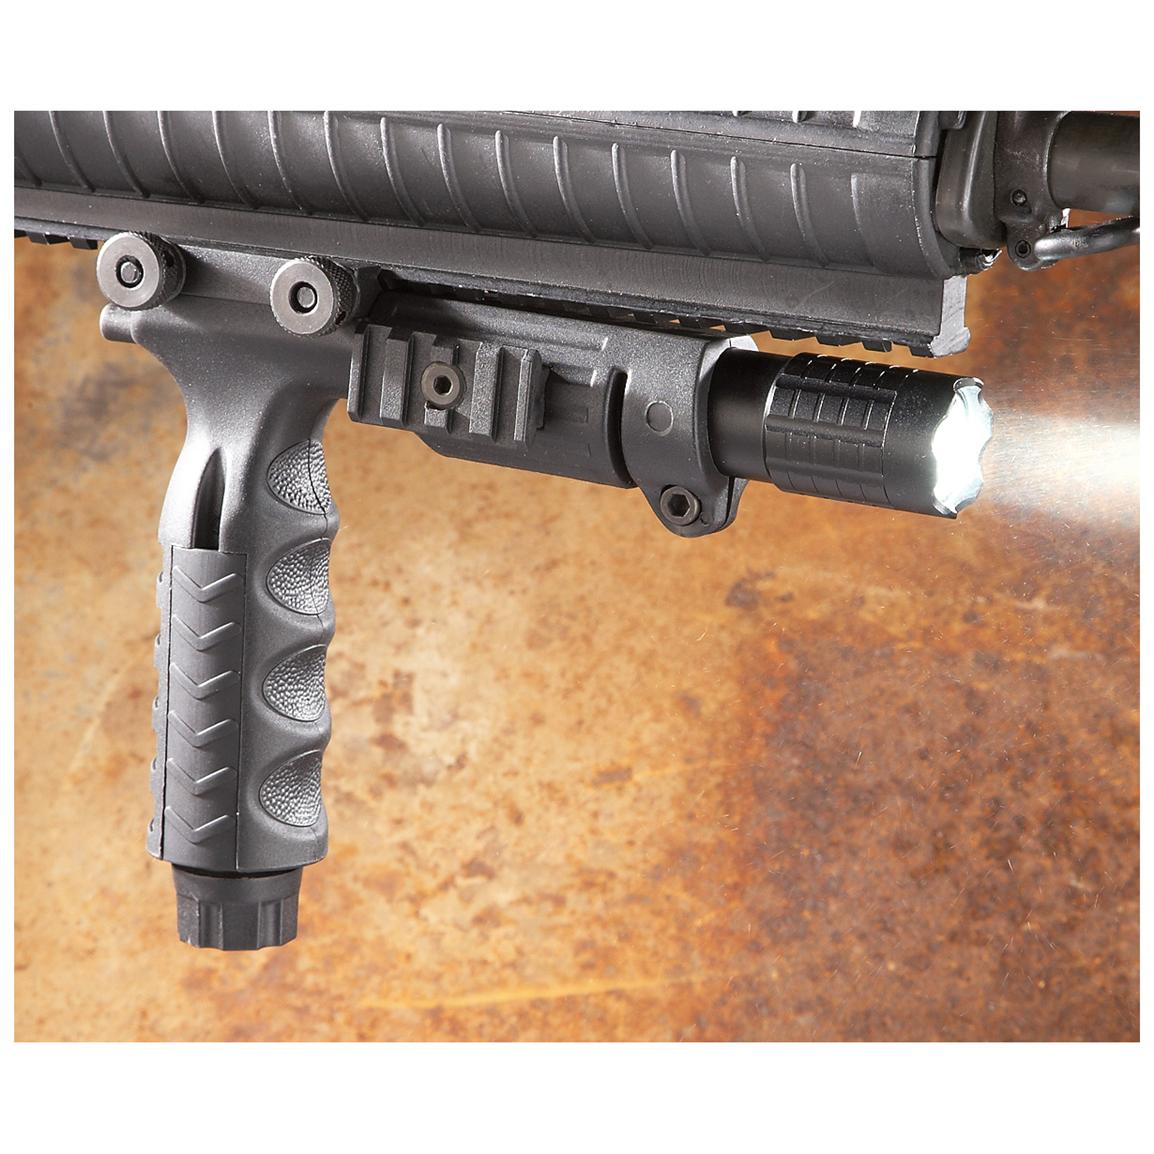 Tactical Foregrip with Super Bright 180-lumen LED Flashlight